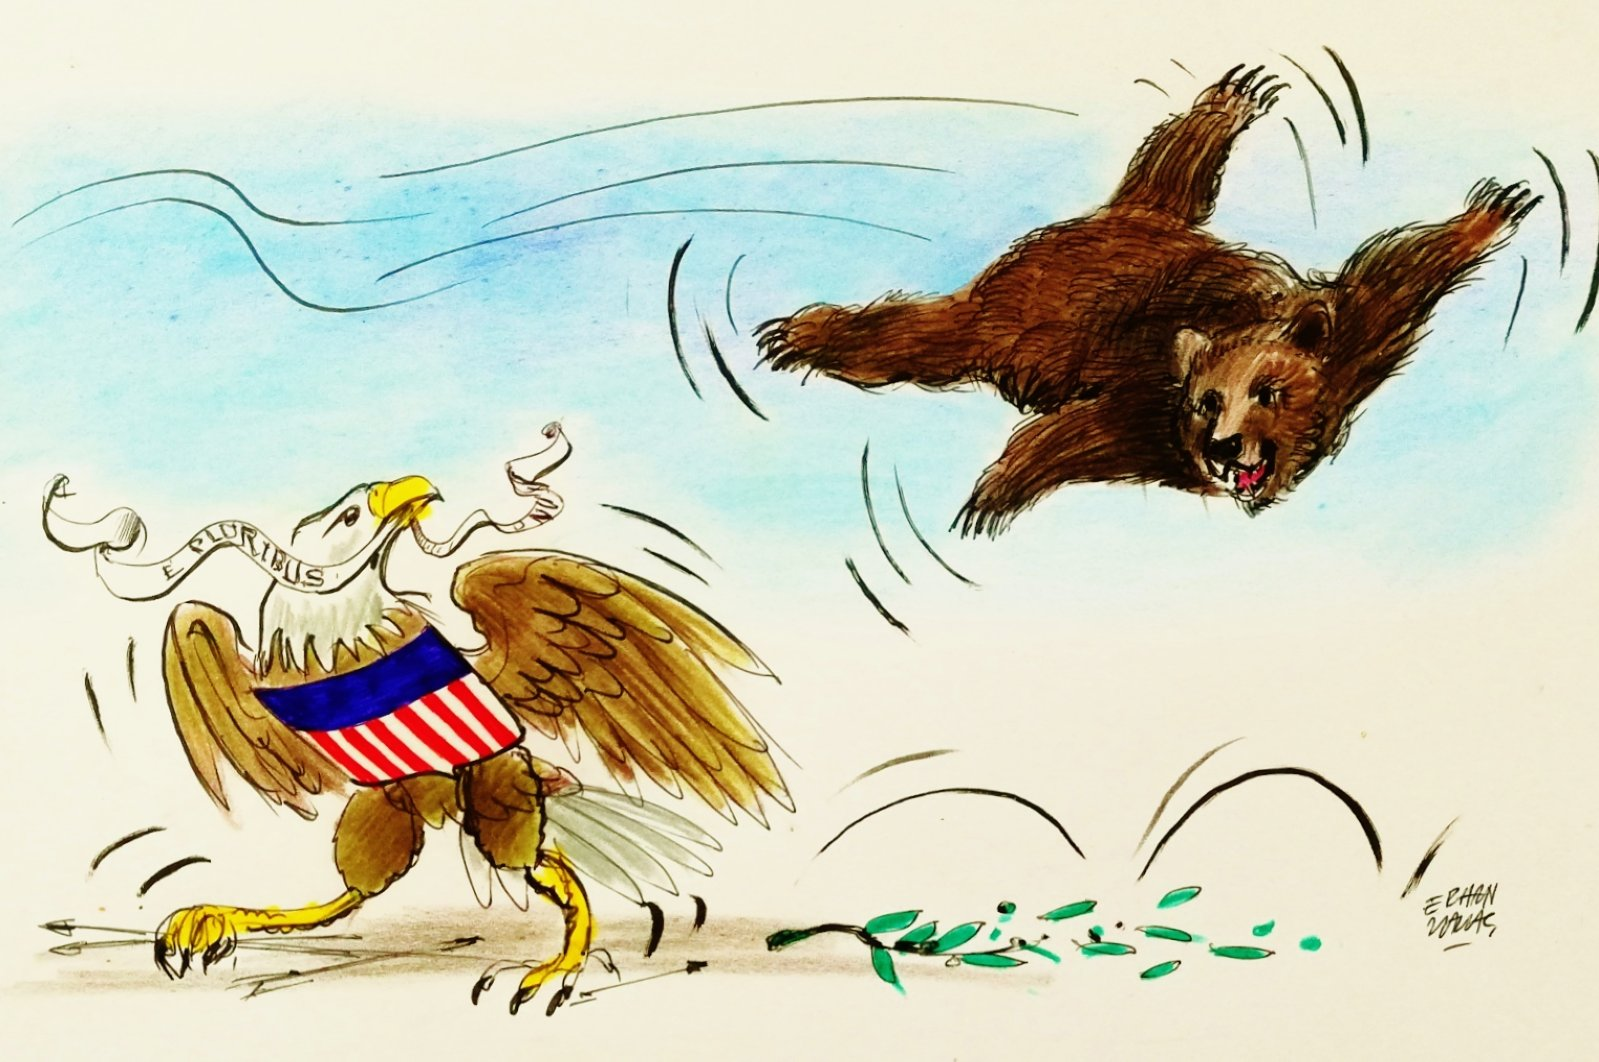 Russia grows stronger in East Med while US looks for comfort | Column